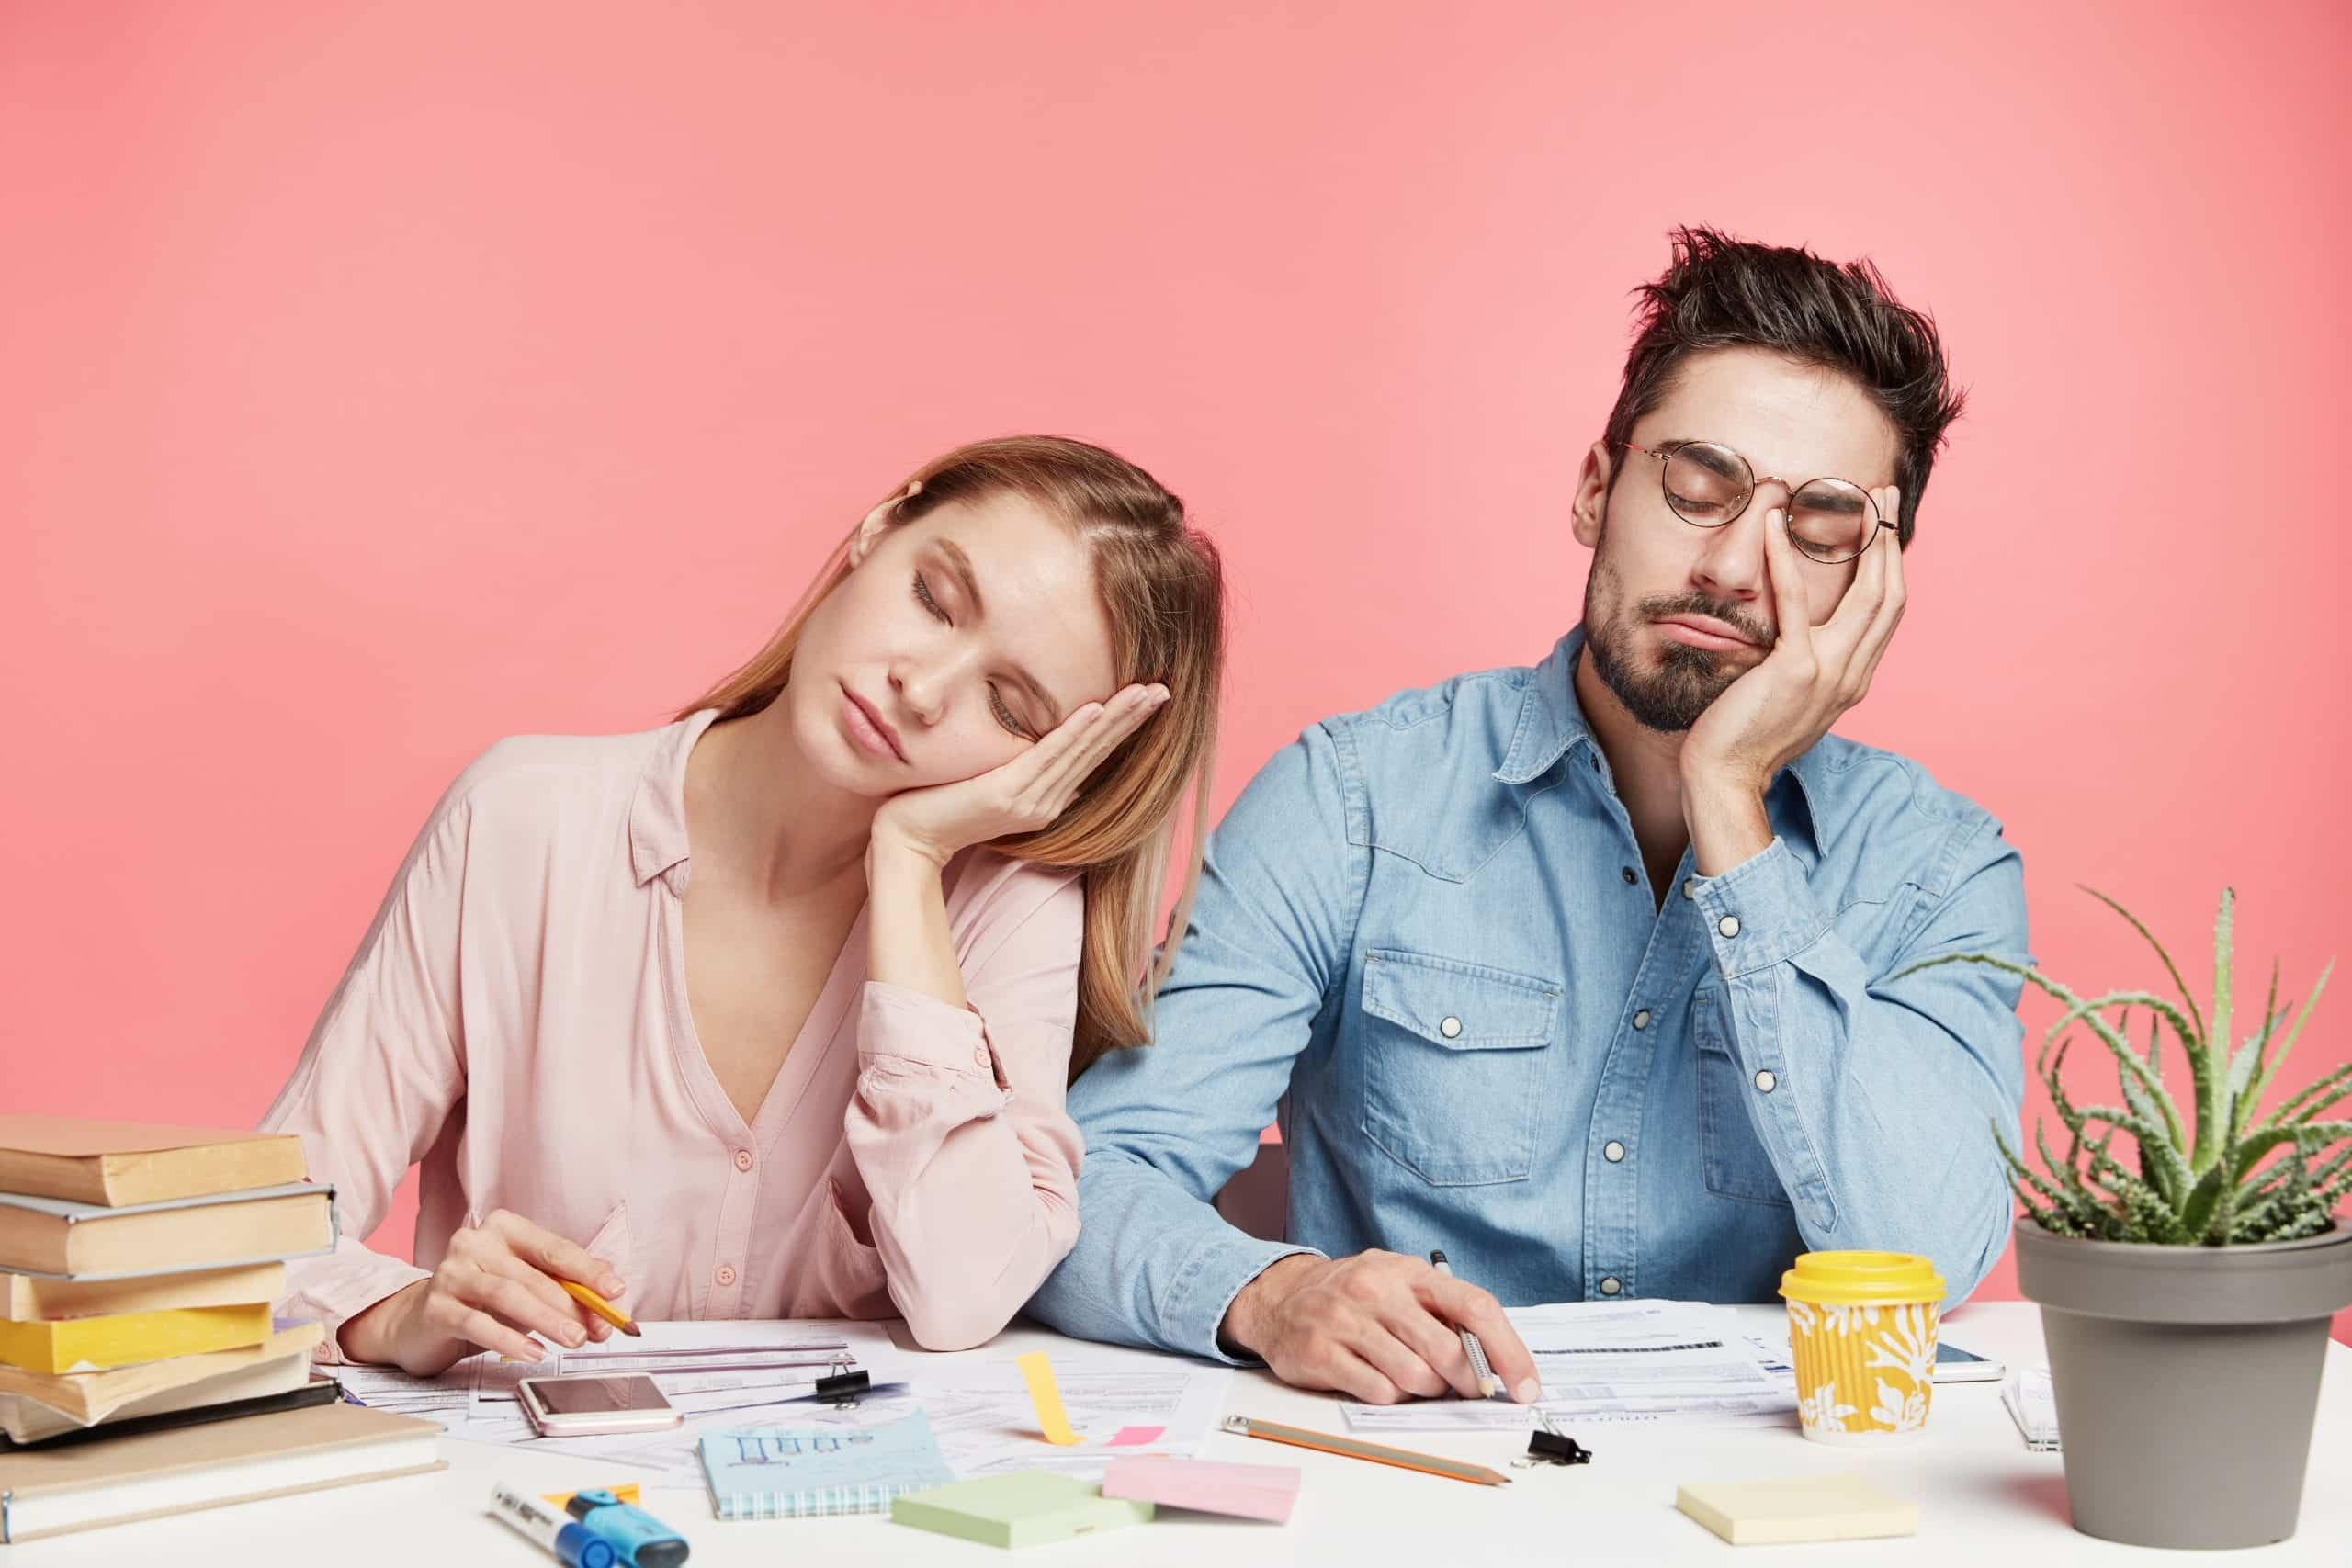 Portrait tired crew of office workers sit at table, fall asleep after working long hours on preparing startup project, feel tiredness, isolated over pink background. People and overworking concept